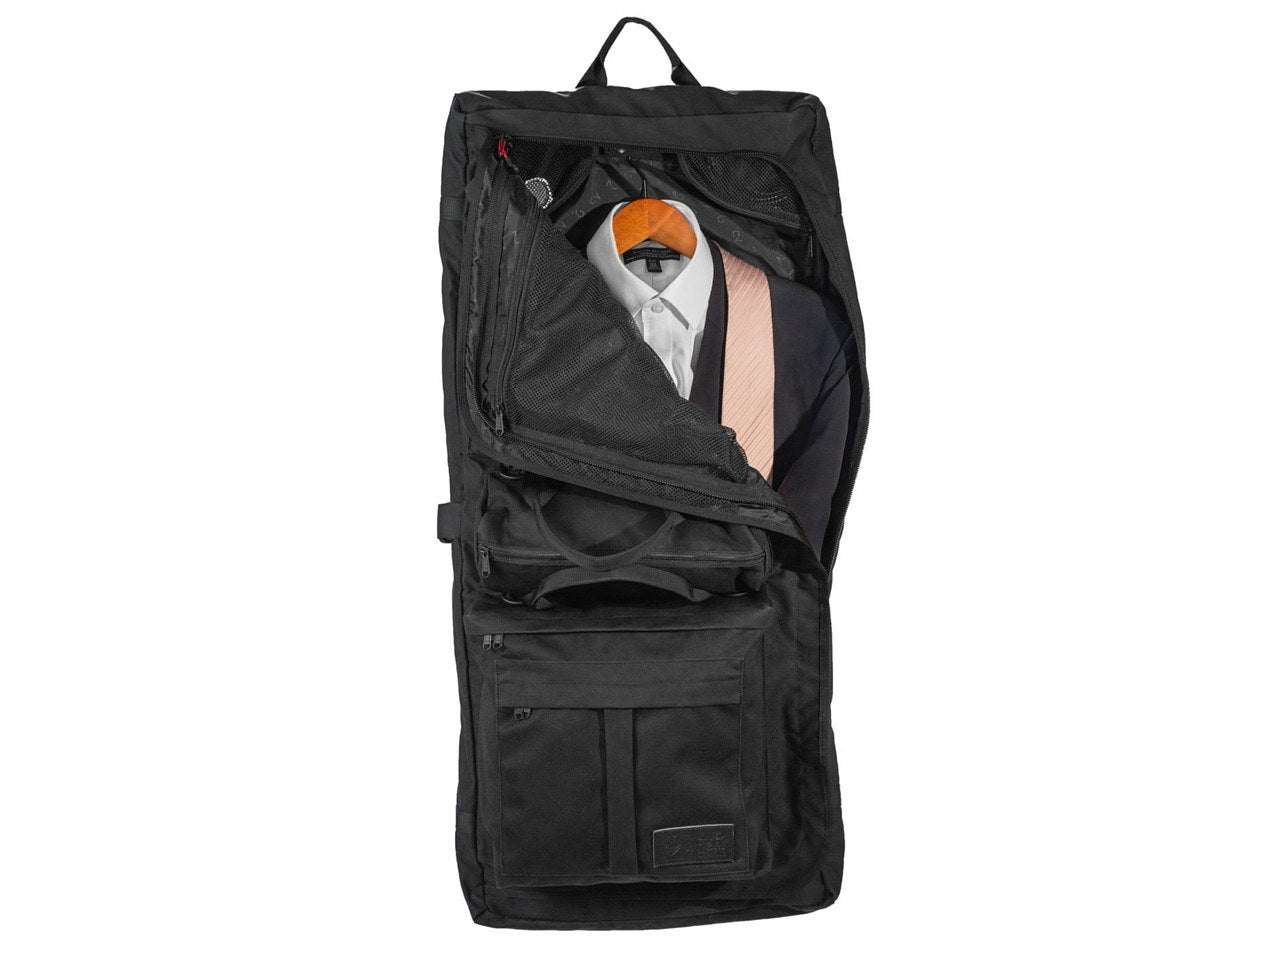 Executive 2.0 Garment Pannier - Black Waxed Canvas , Bags - Two Wheel Gear, Two Wheel Gear - 6